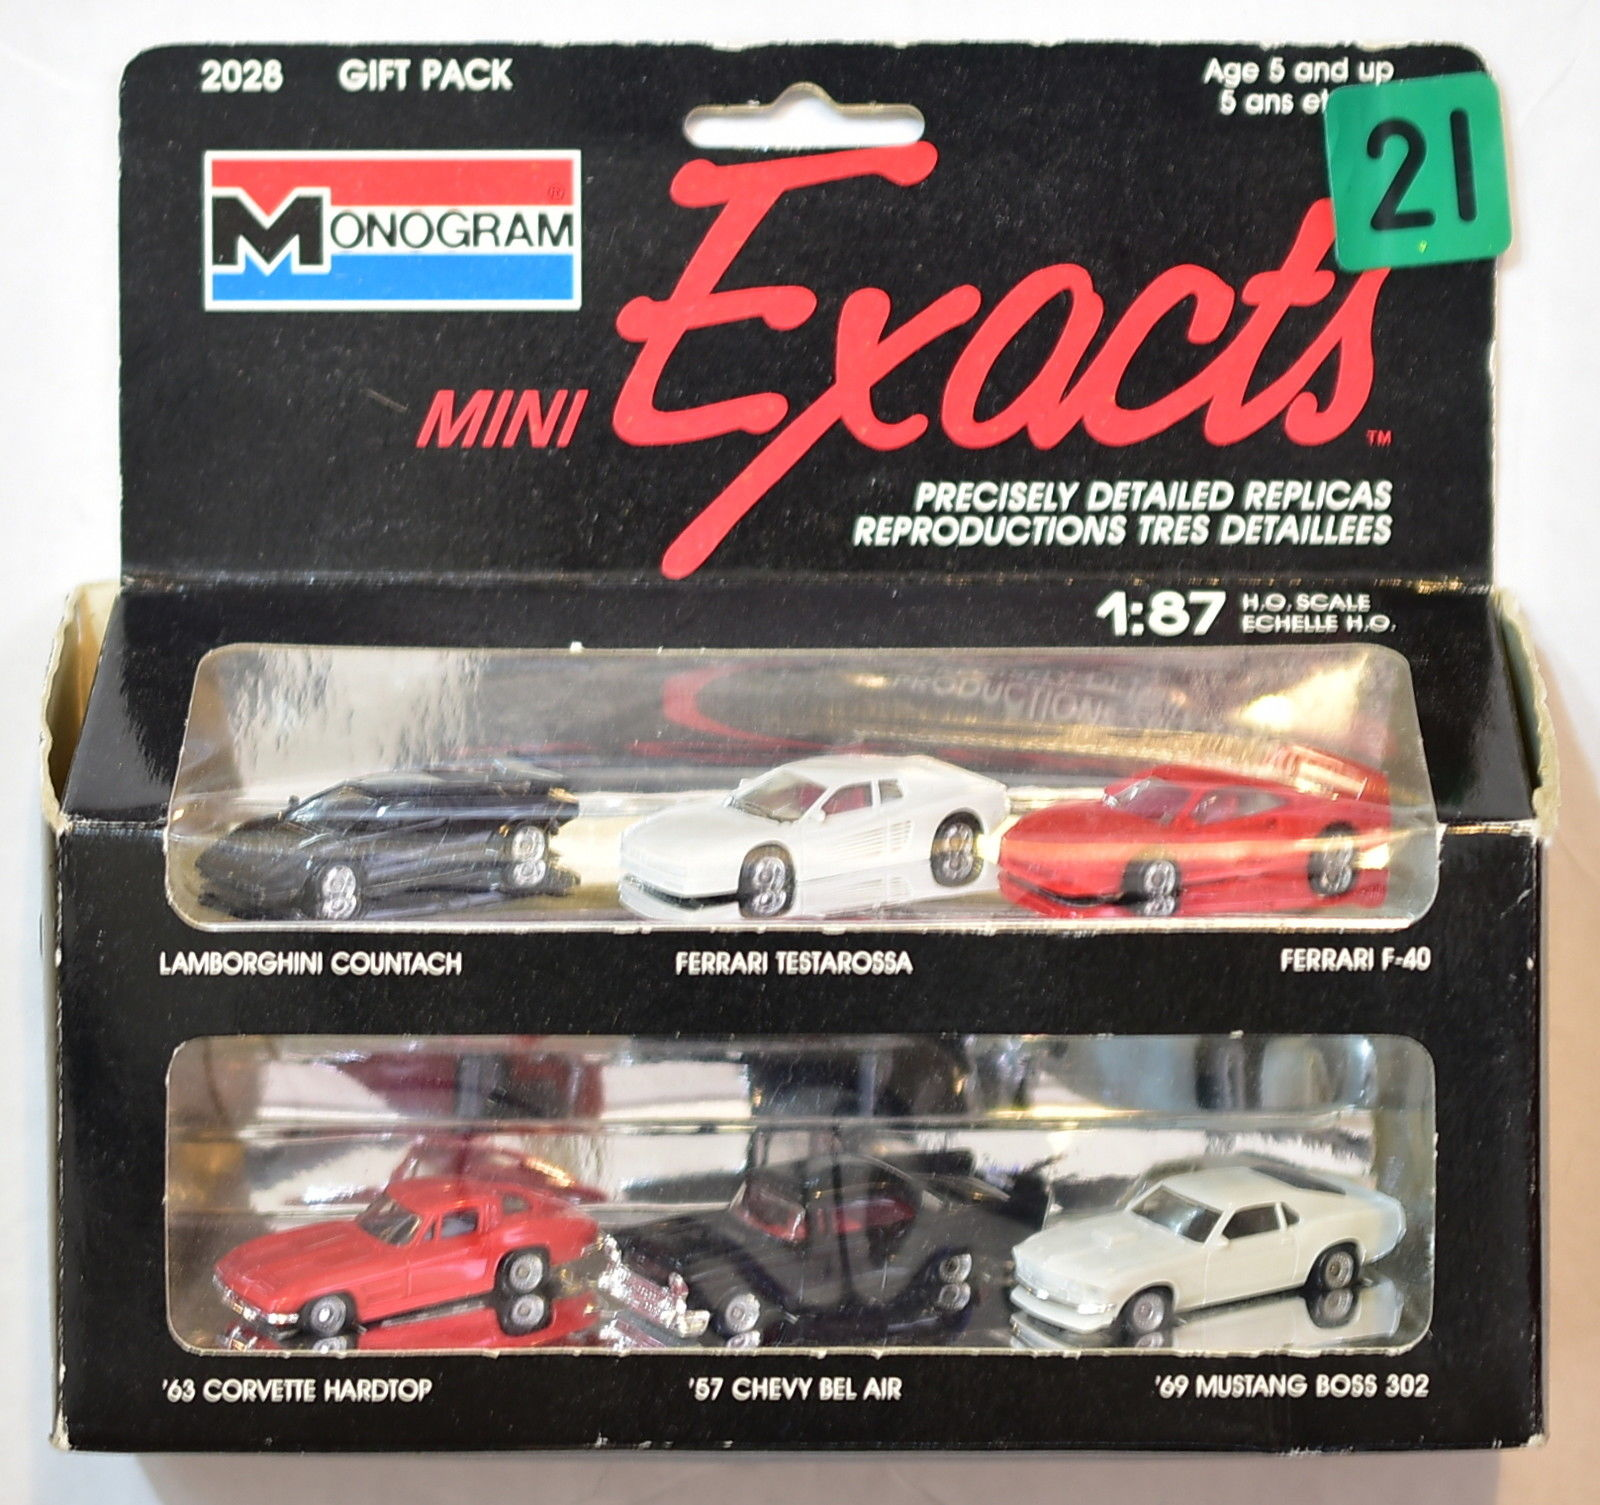 MONOGRAM MINI EXACTS 1:87 HO SCALE LAMBORGHINI FERRARI CHEVY MUSTANG CORVETTE